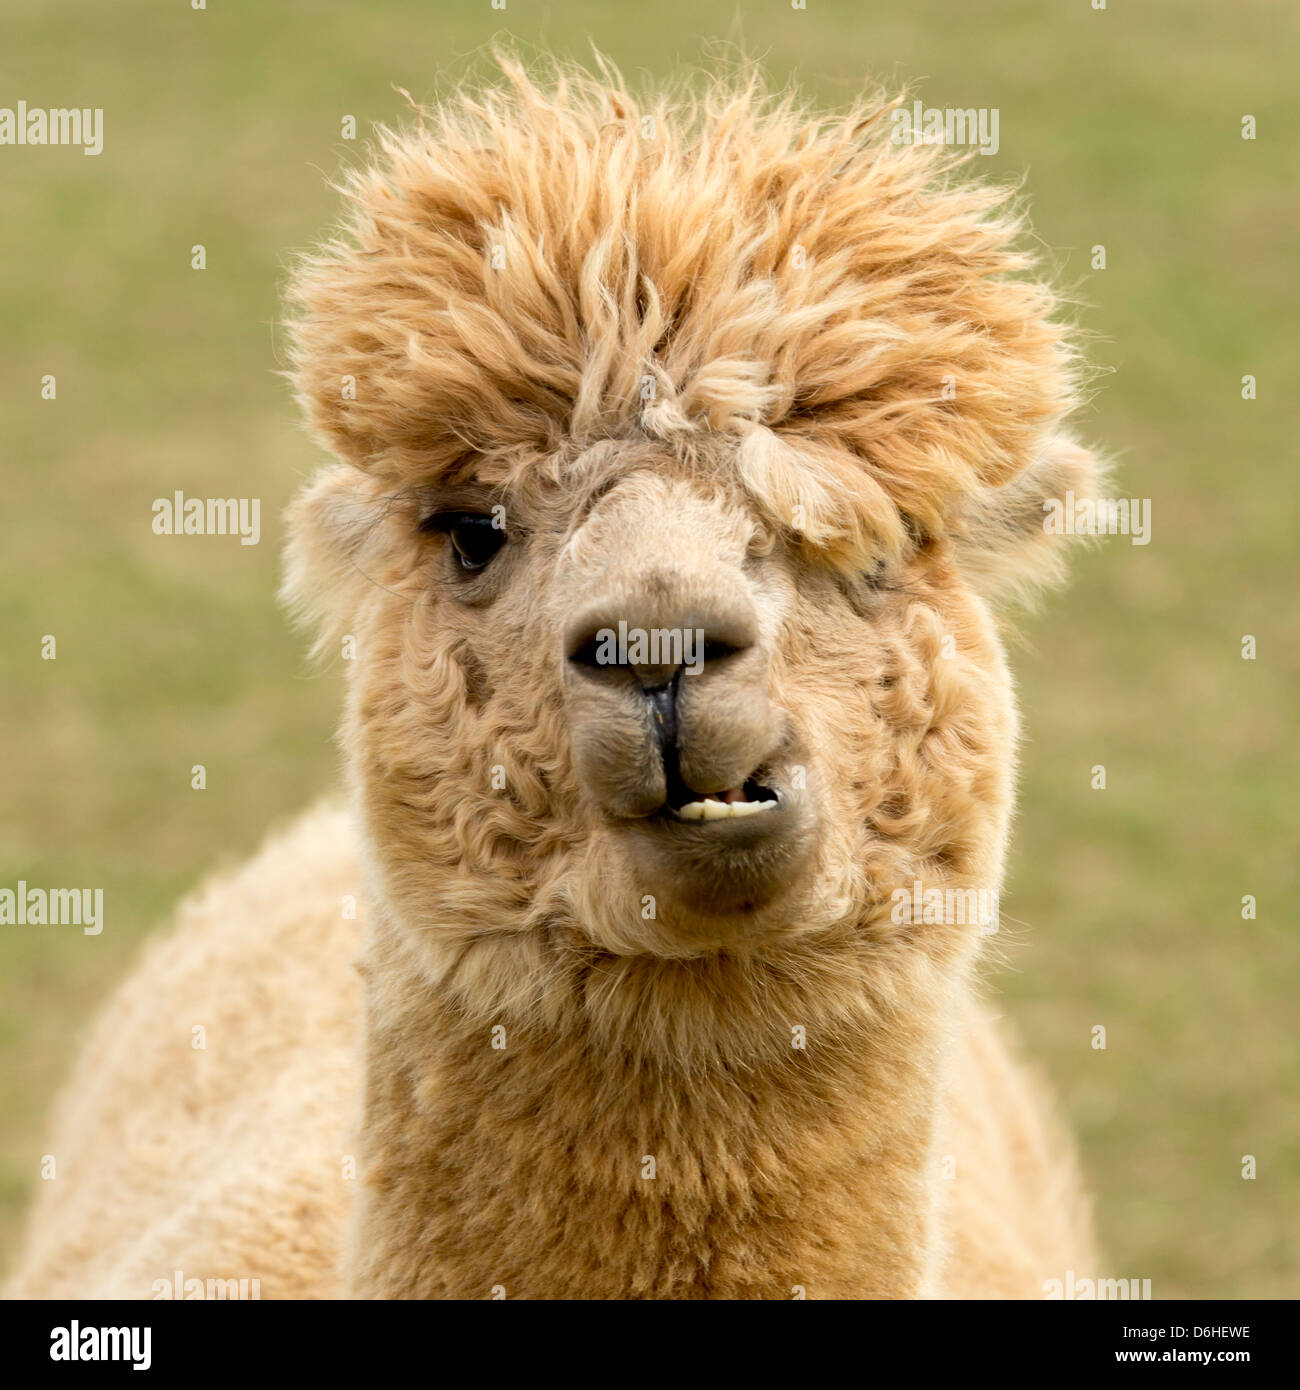 Alpaca with a comical expression, on an Alpaca farm at Husthwaite in North Yorkshire, UK. - Stock Image